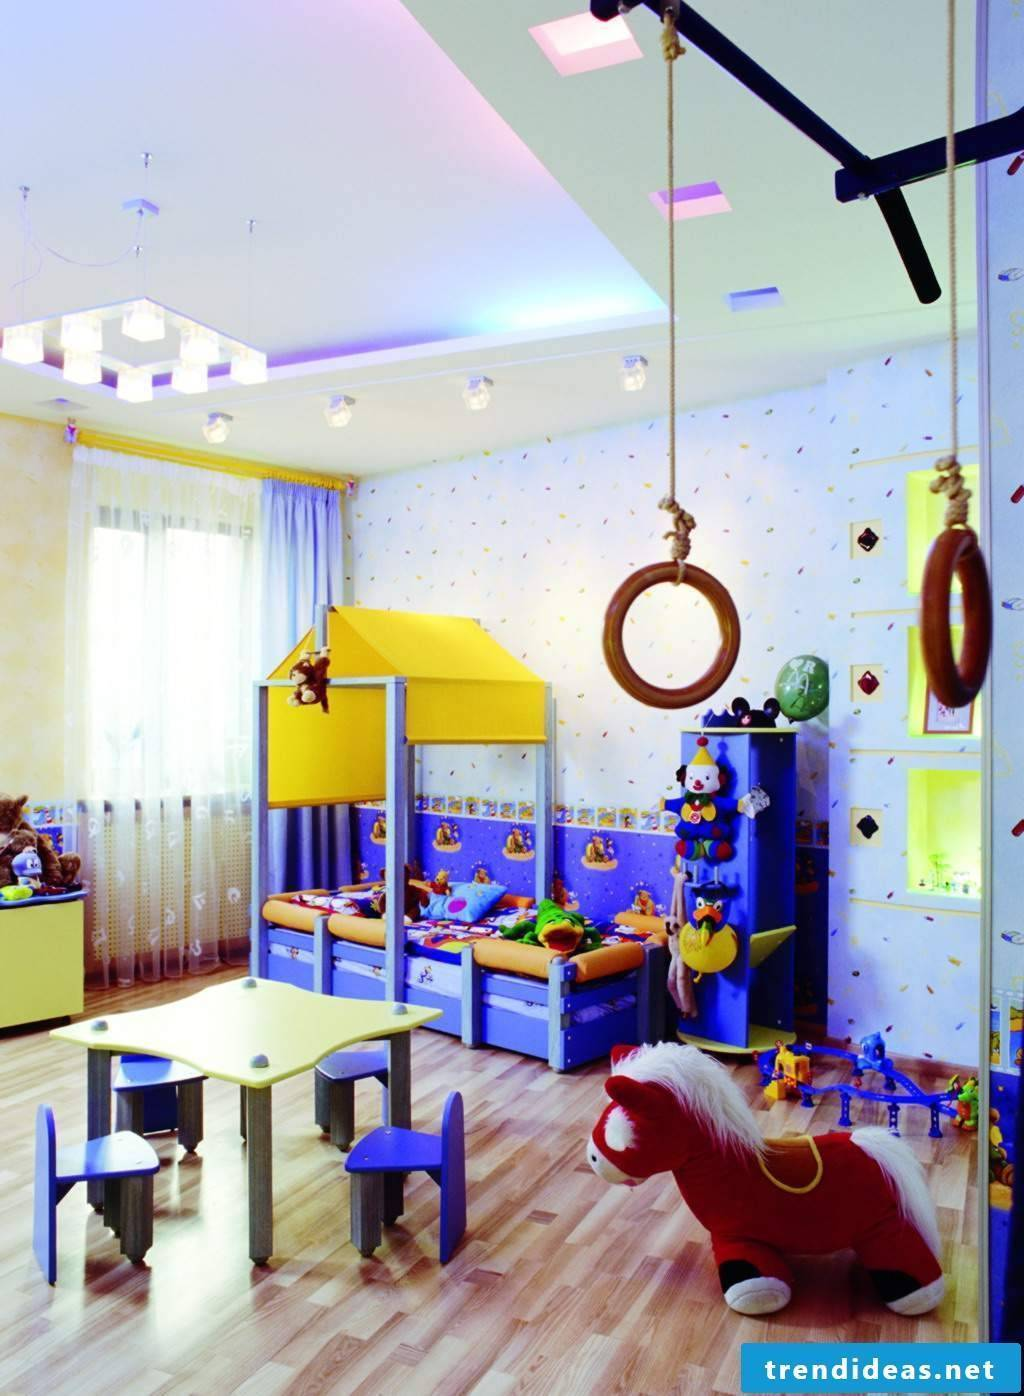 Nursery design for little boy